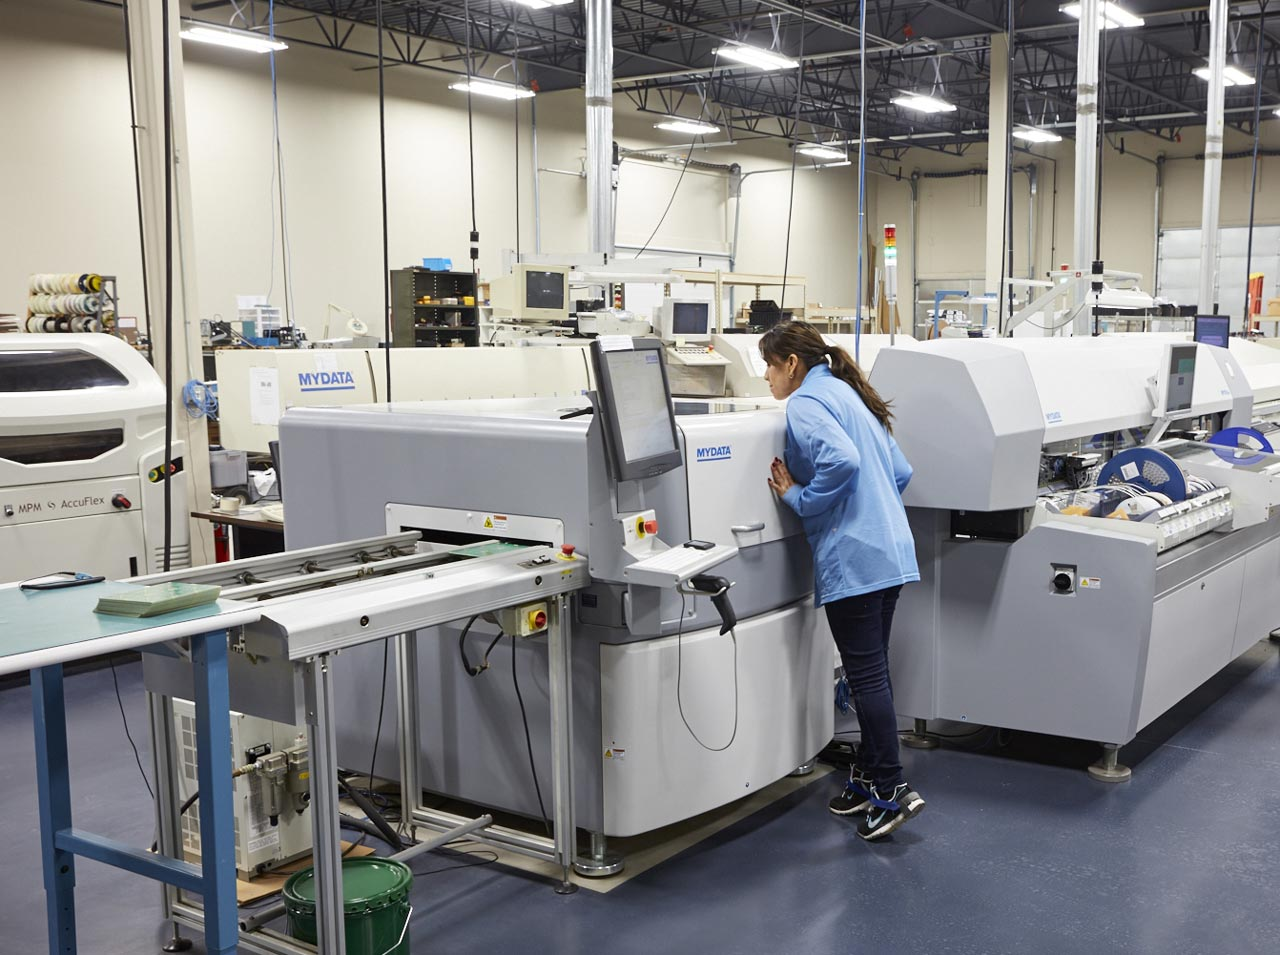 Solder Jet Printing What You Need To Know For Smt Pcb Outsourcing And Defects Electronics Manufacturing Caltronics Design